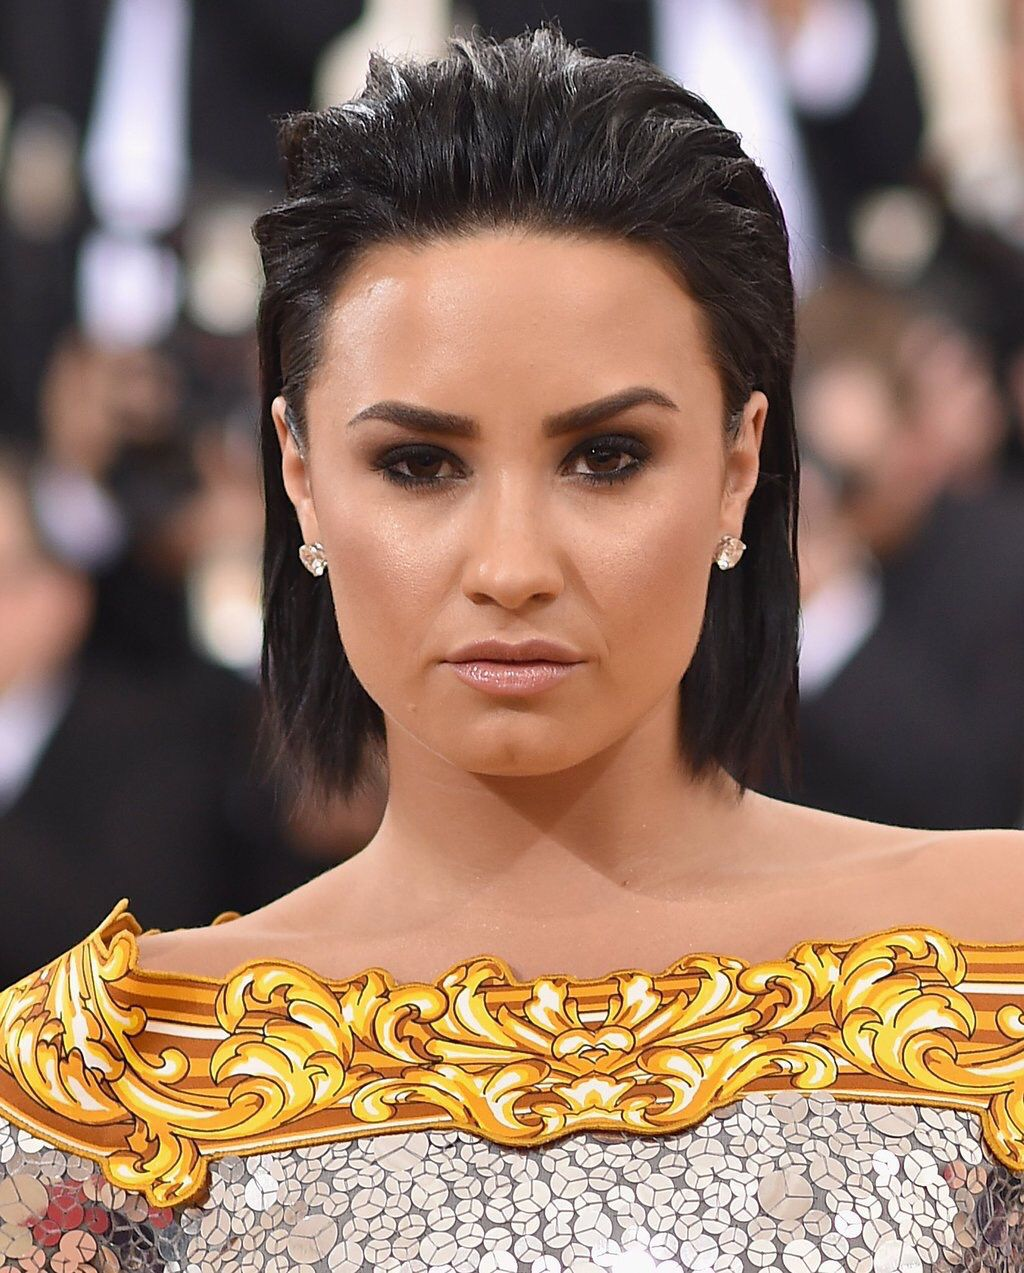 Demi Lovato at the #MetGala in New York - May 2nd